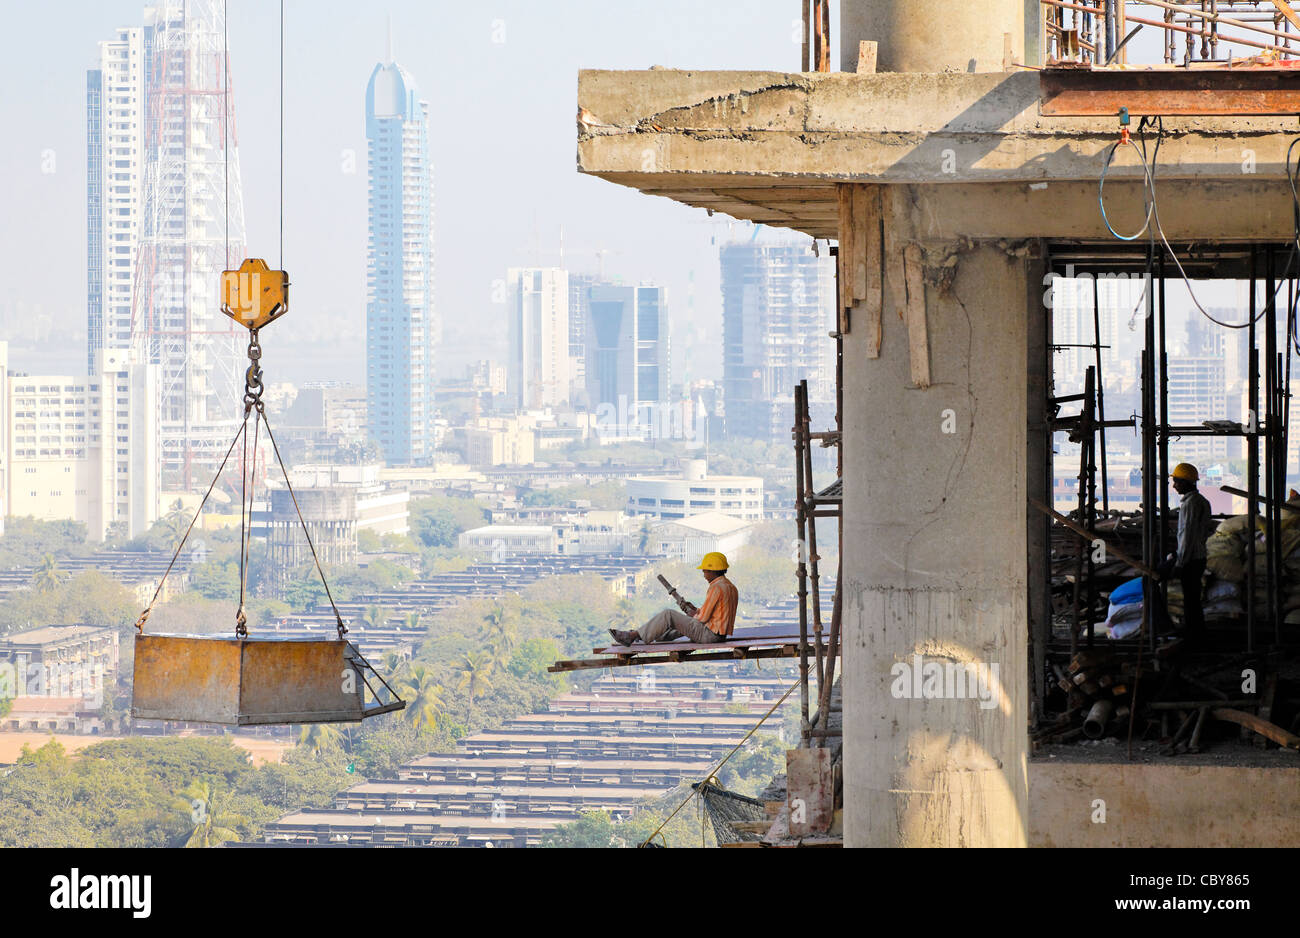 Workman sat on an overhanging board at work on the 17th floor of high rise block, no harness or safety gear - Stock Image